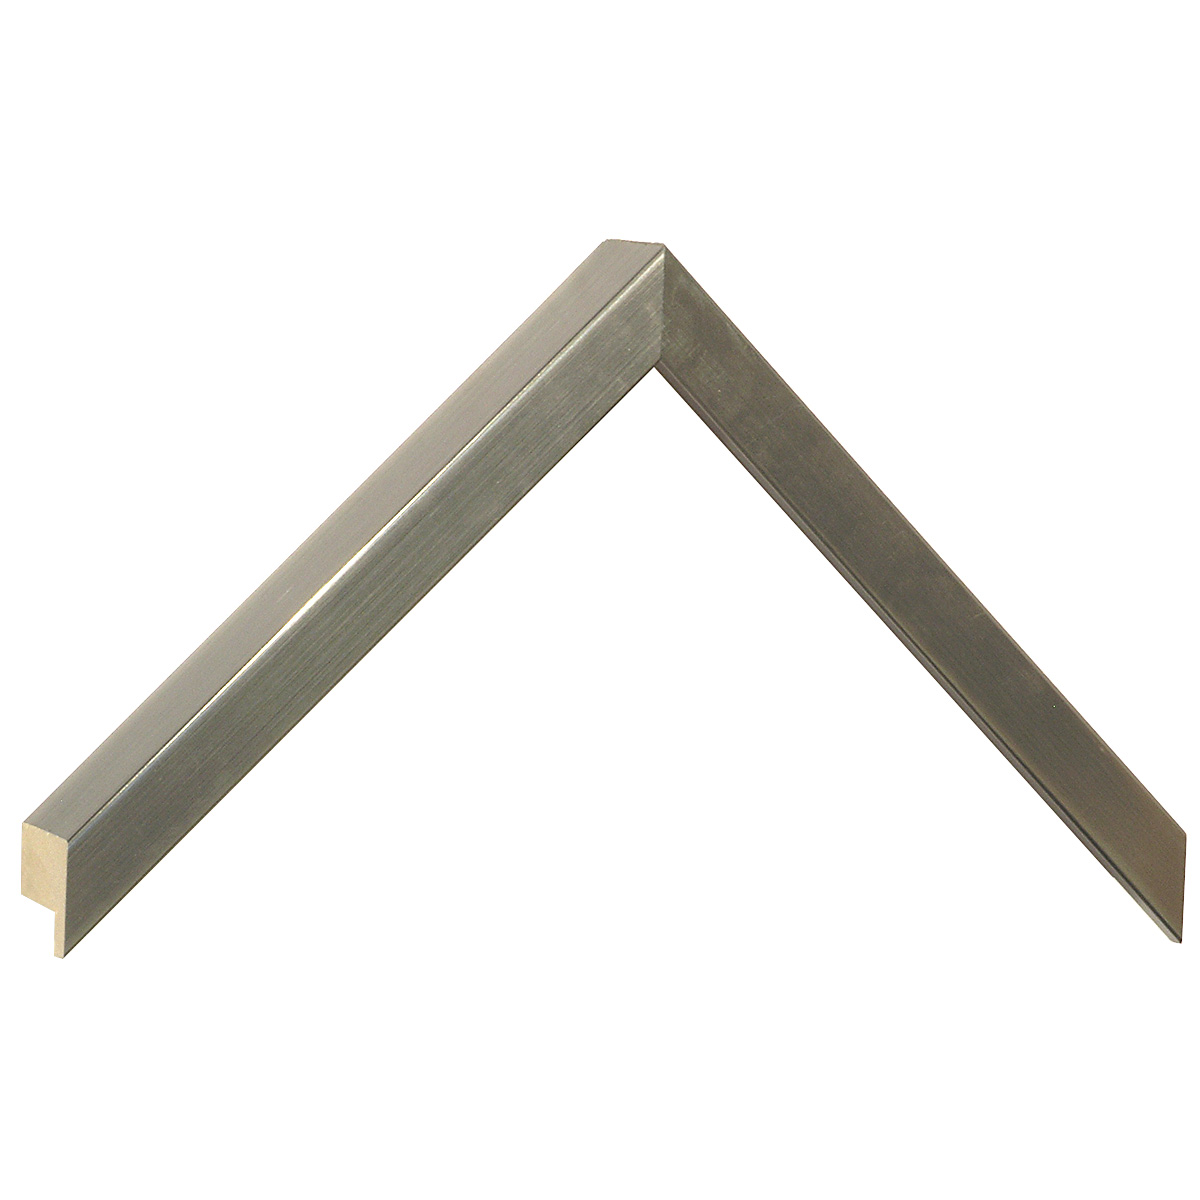 Moulding ayous, width 15mm height 32 - Pewter